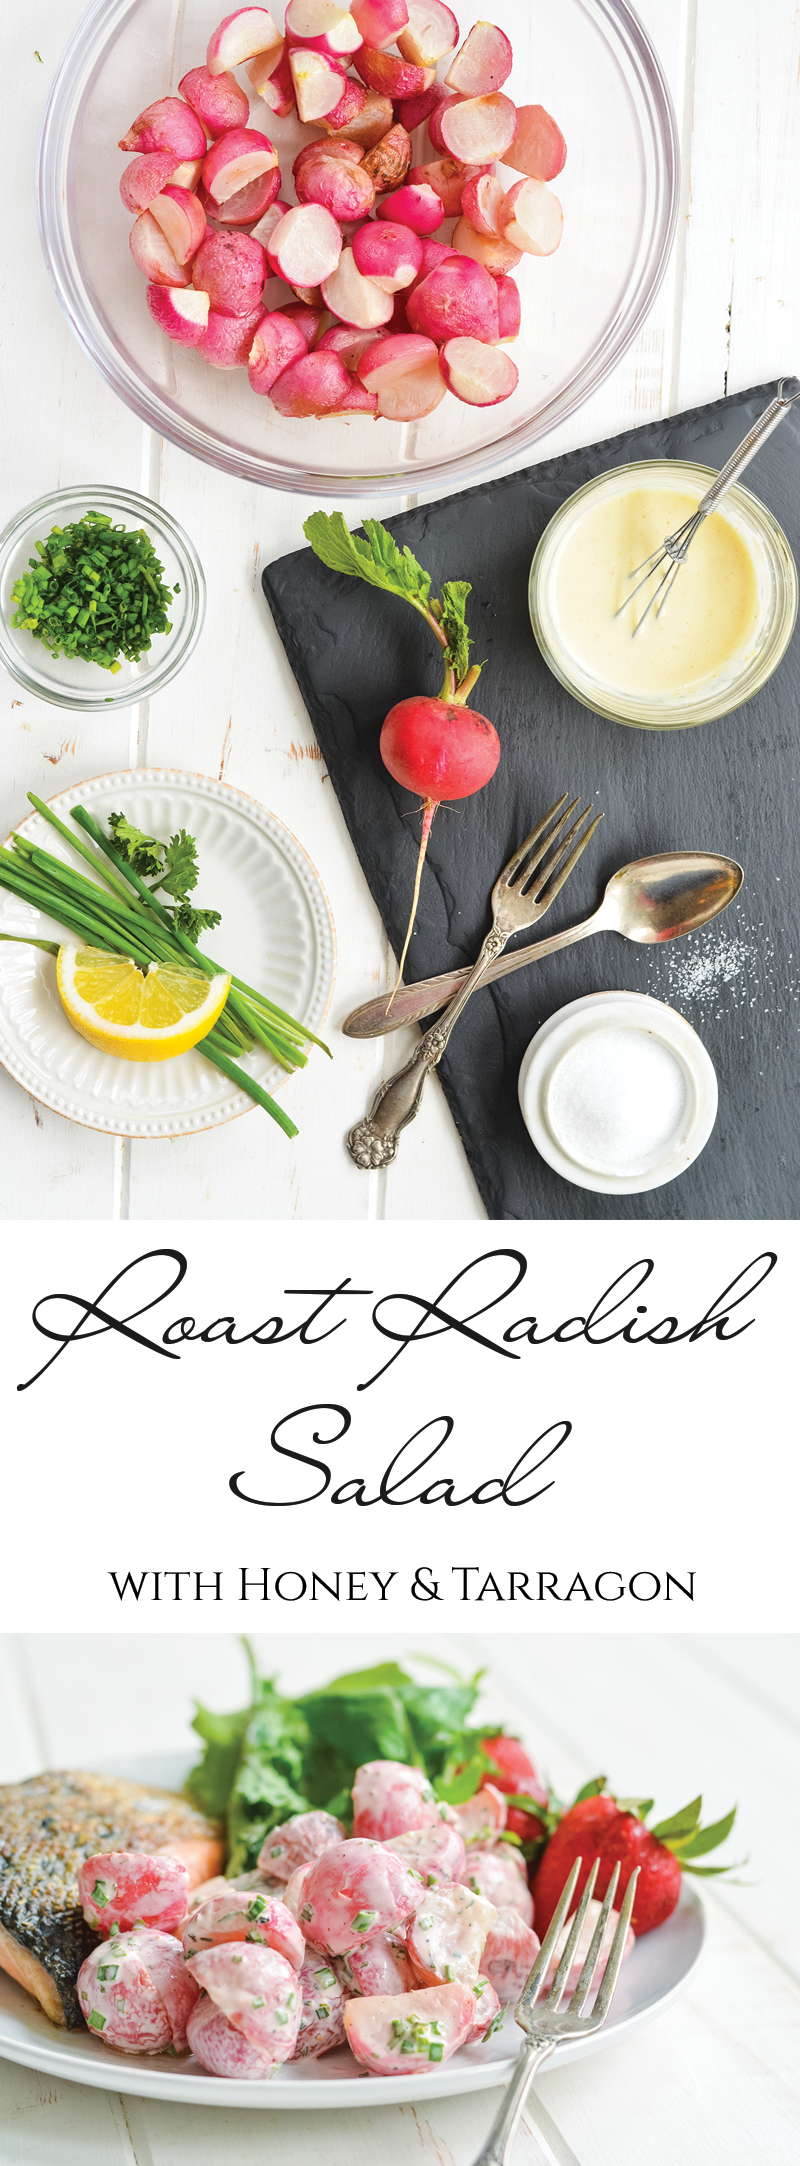 This simple and delicious Honey Tarragon Roast Radish Salad recipe will bring a touch of flavor and whimsy to any spring menu! Serve this delightfully colorful salad with lunch, brunch, or your favorite casual supper.